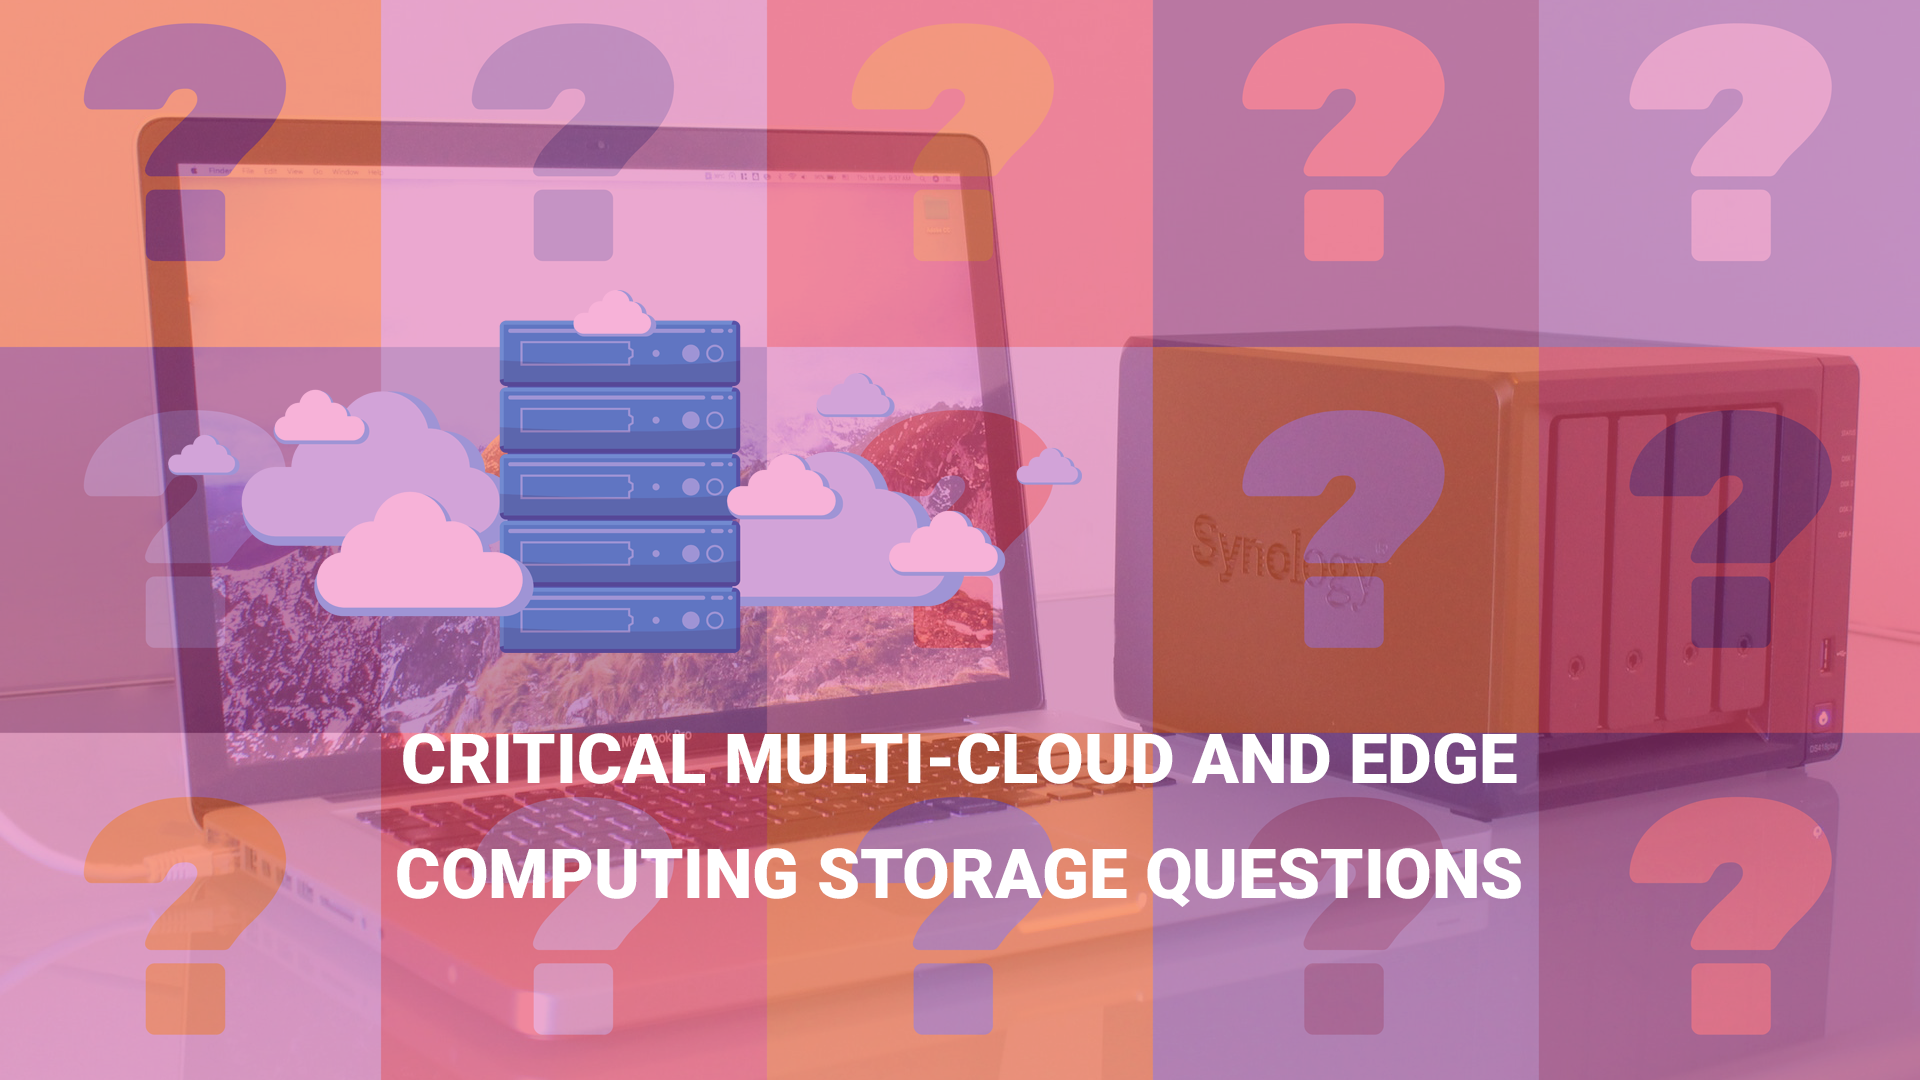 Critical multi-cloud and edge computing storage questions